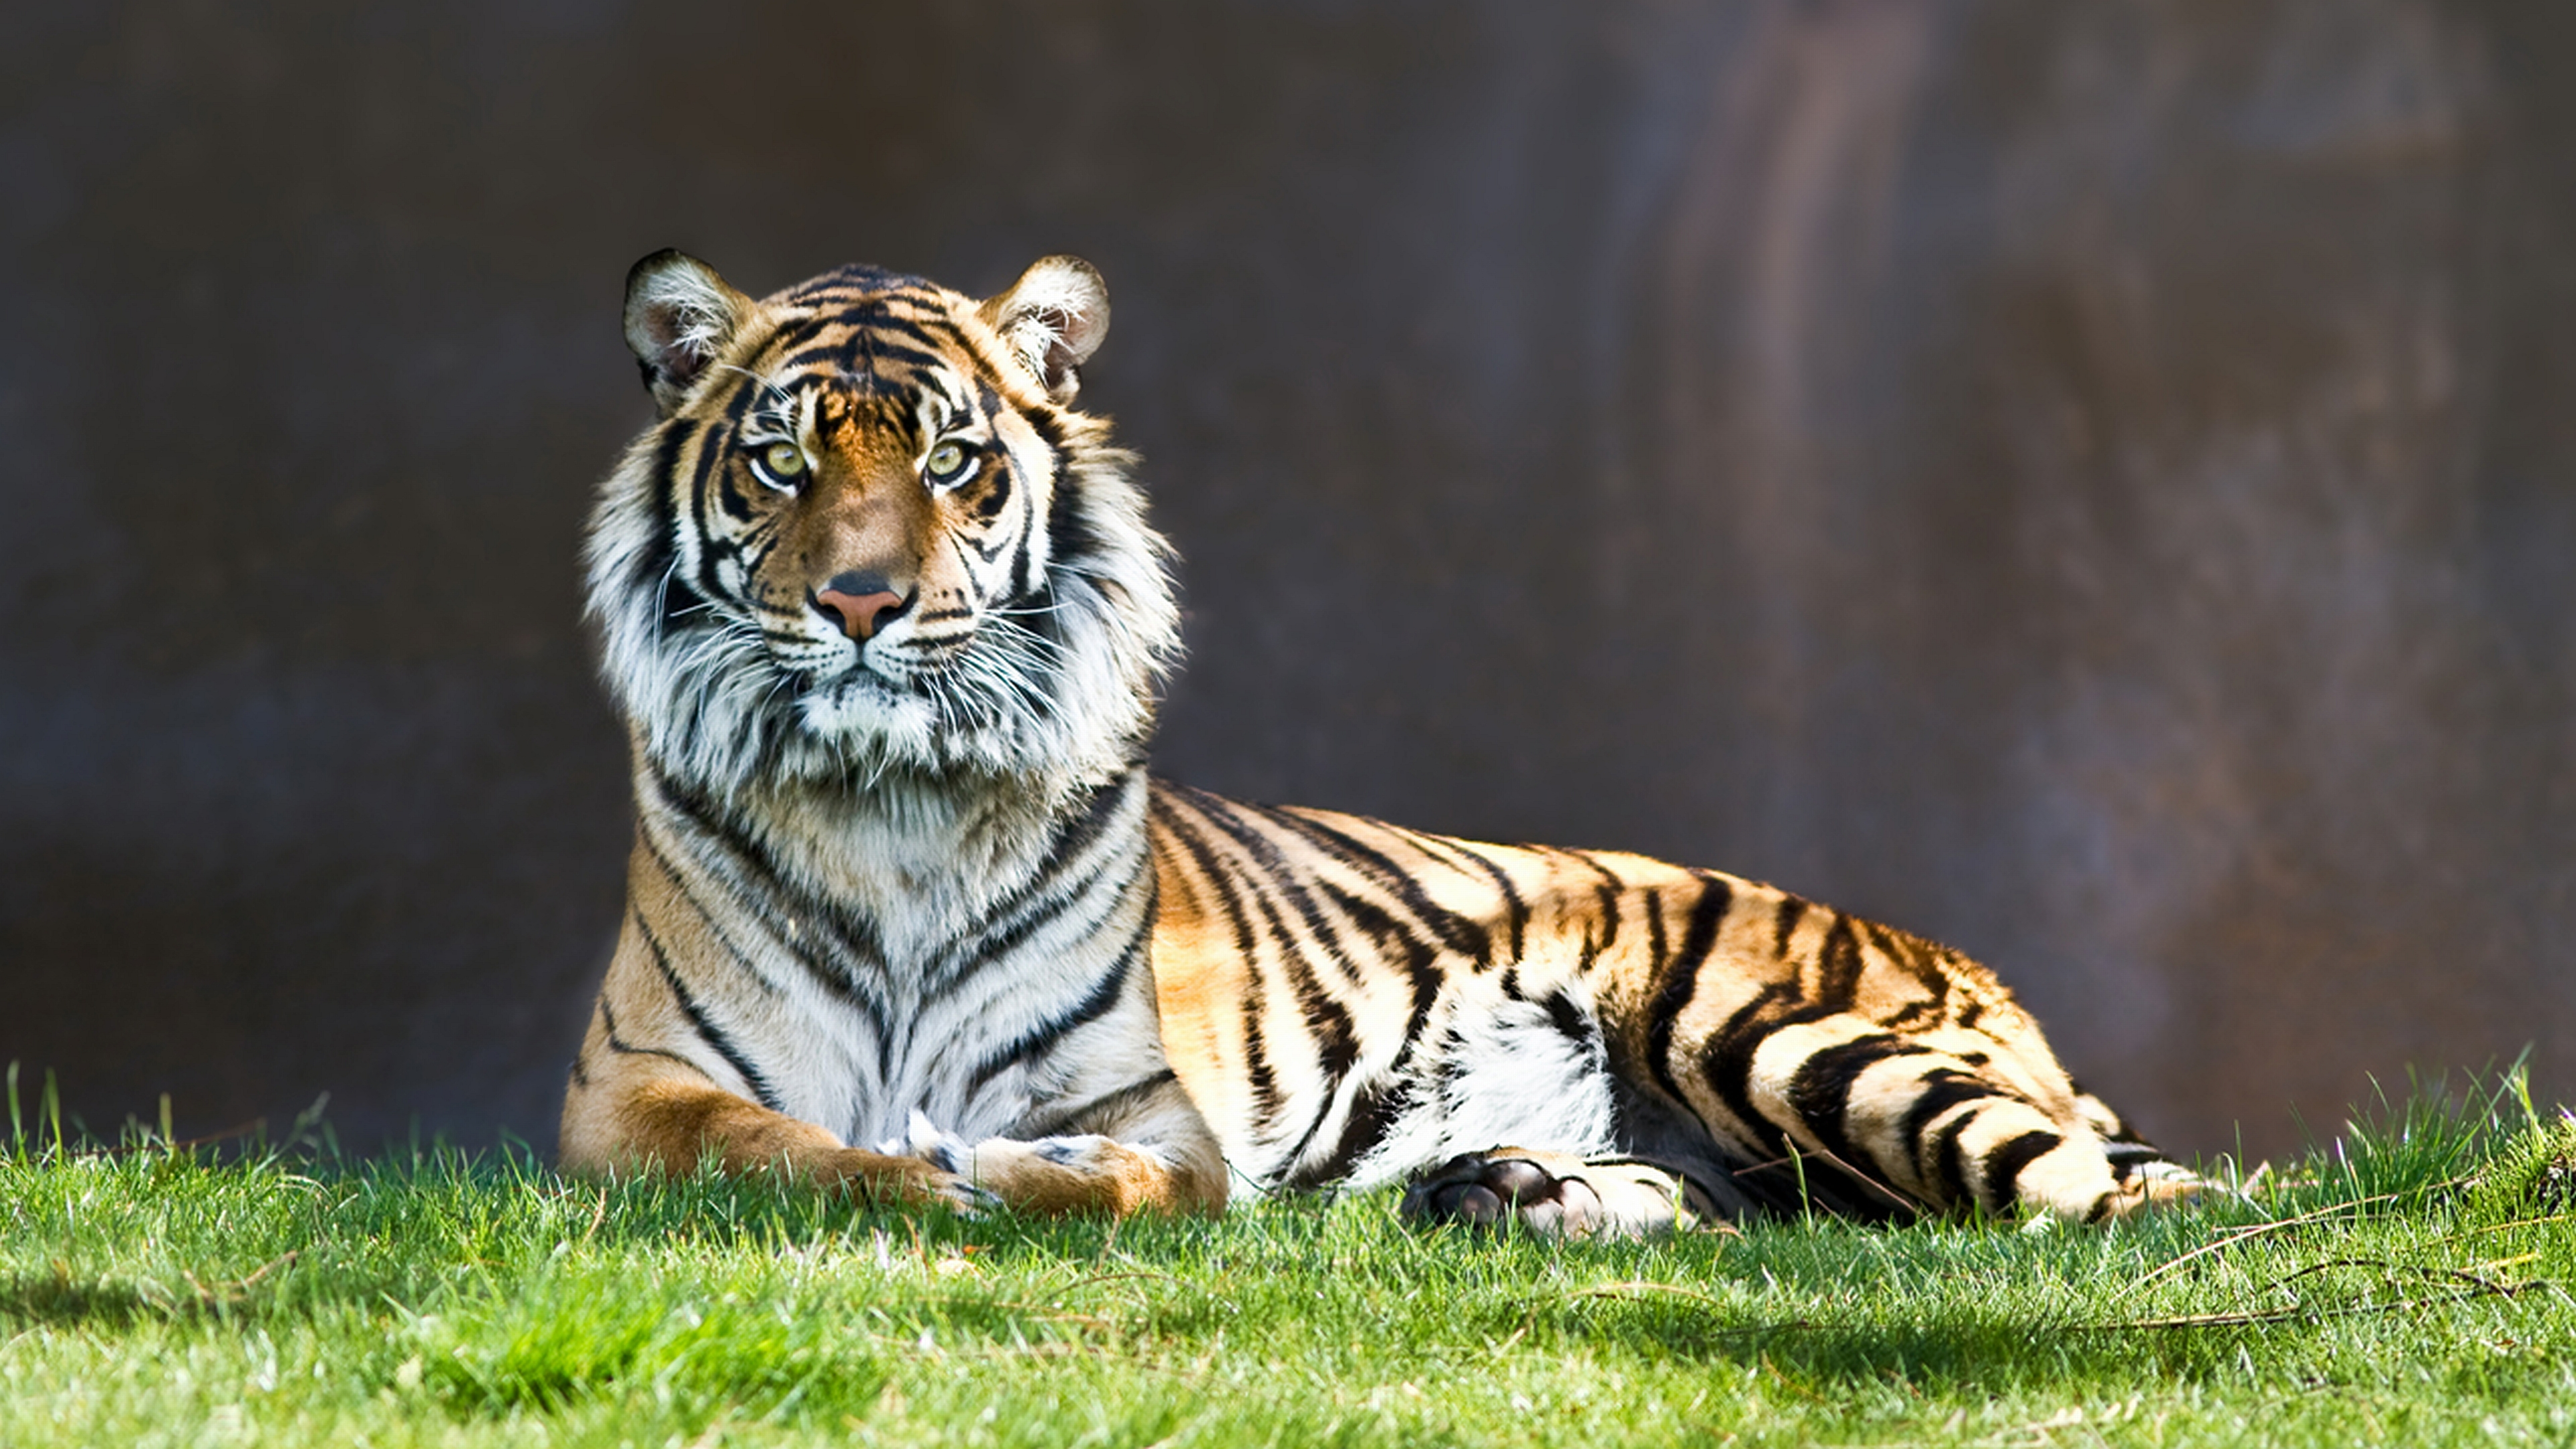 133 4k ultra hd tiger wallpapers | background images - wallpaper abyss